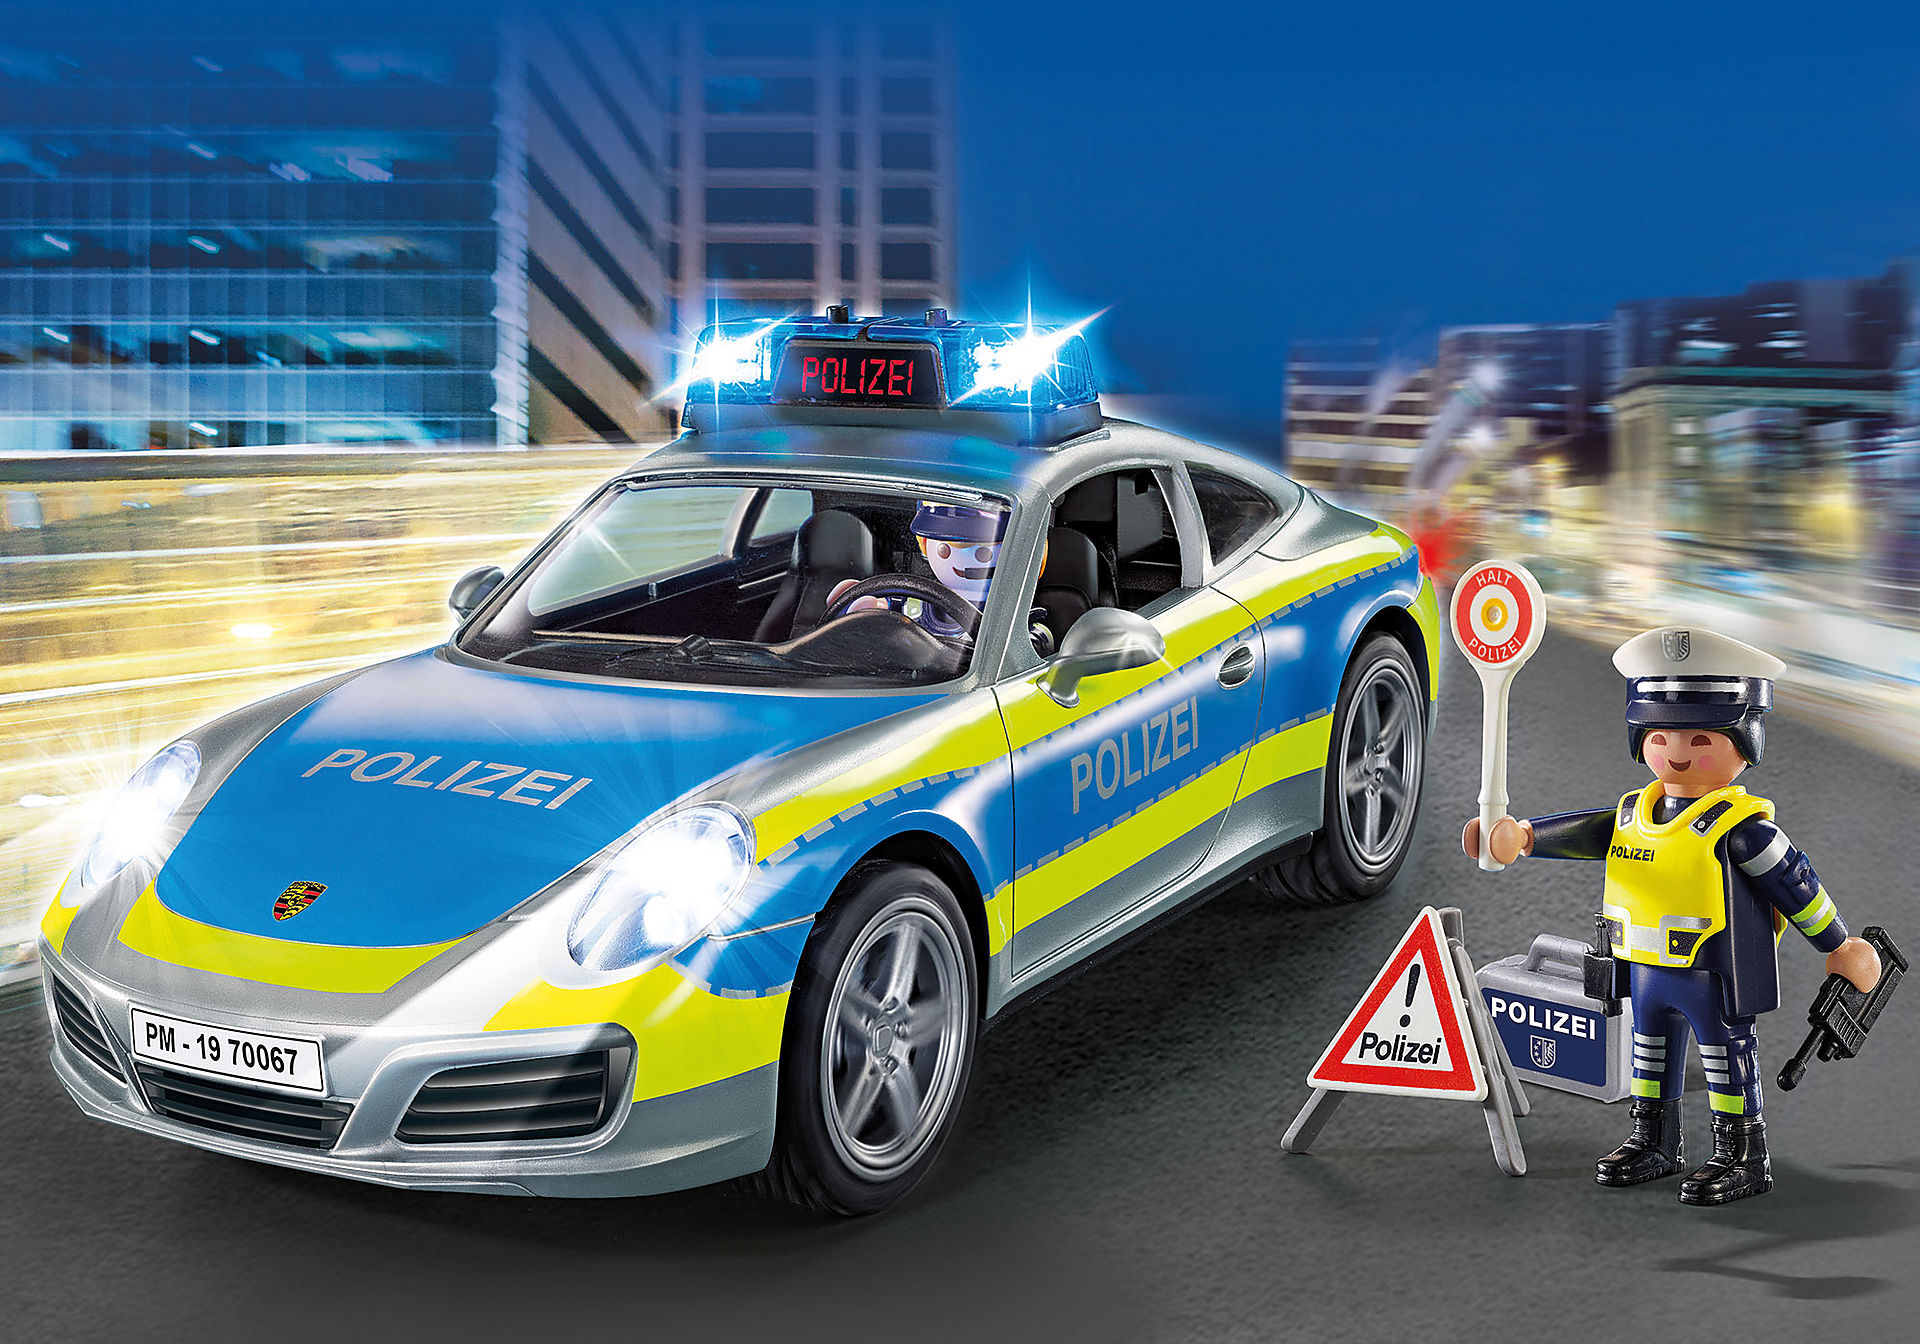 http://media.playmobil.com/i/playmobil/70067_product_detail/Porsche 911 Carrera 4S Polizei